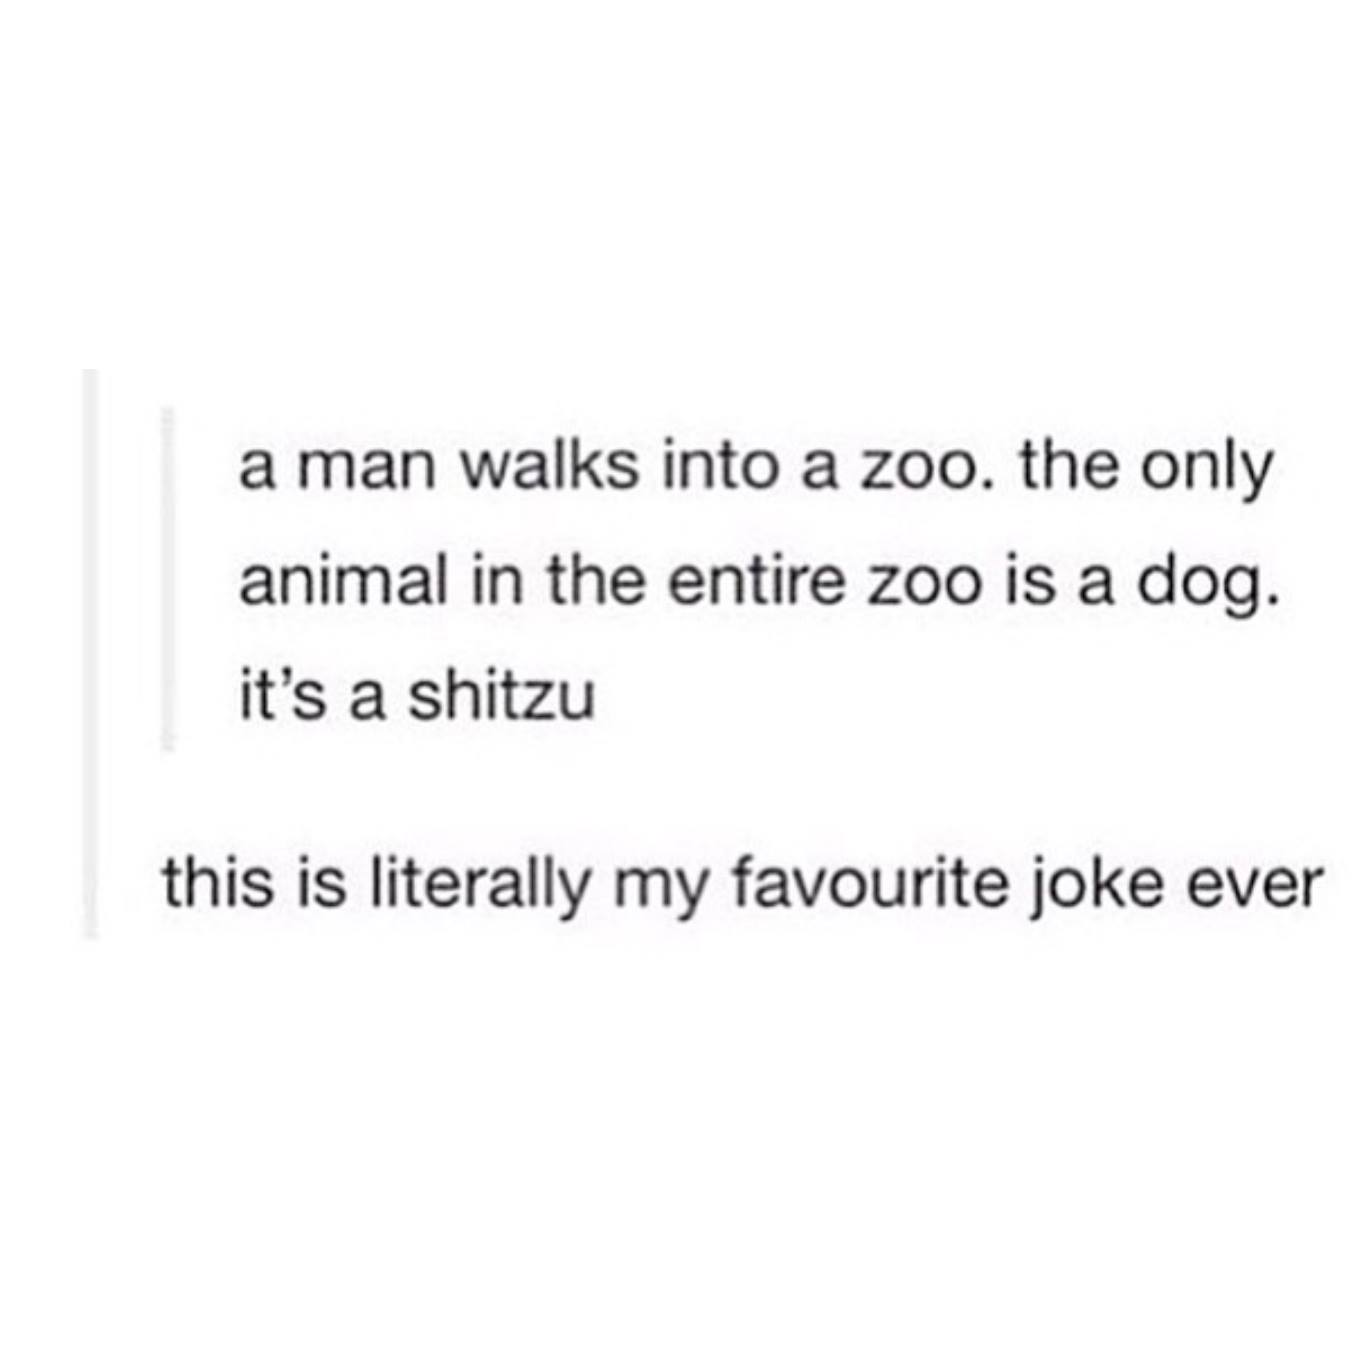 a man walks into a zoo, the only animal in the entire zoo is a dog, it's a shitzu, this is literally my favourite joke ever